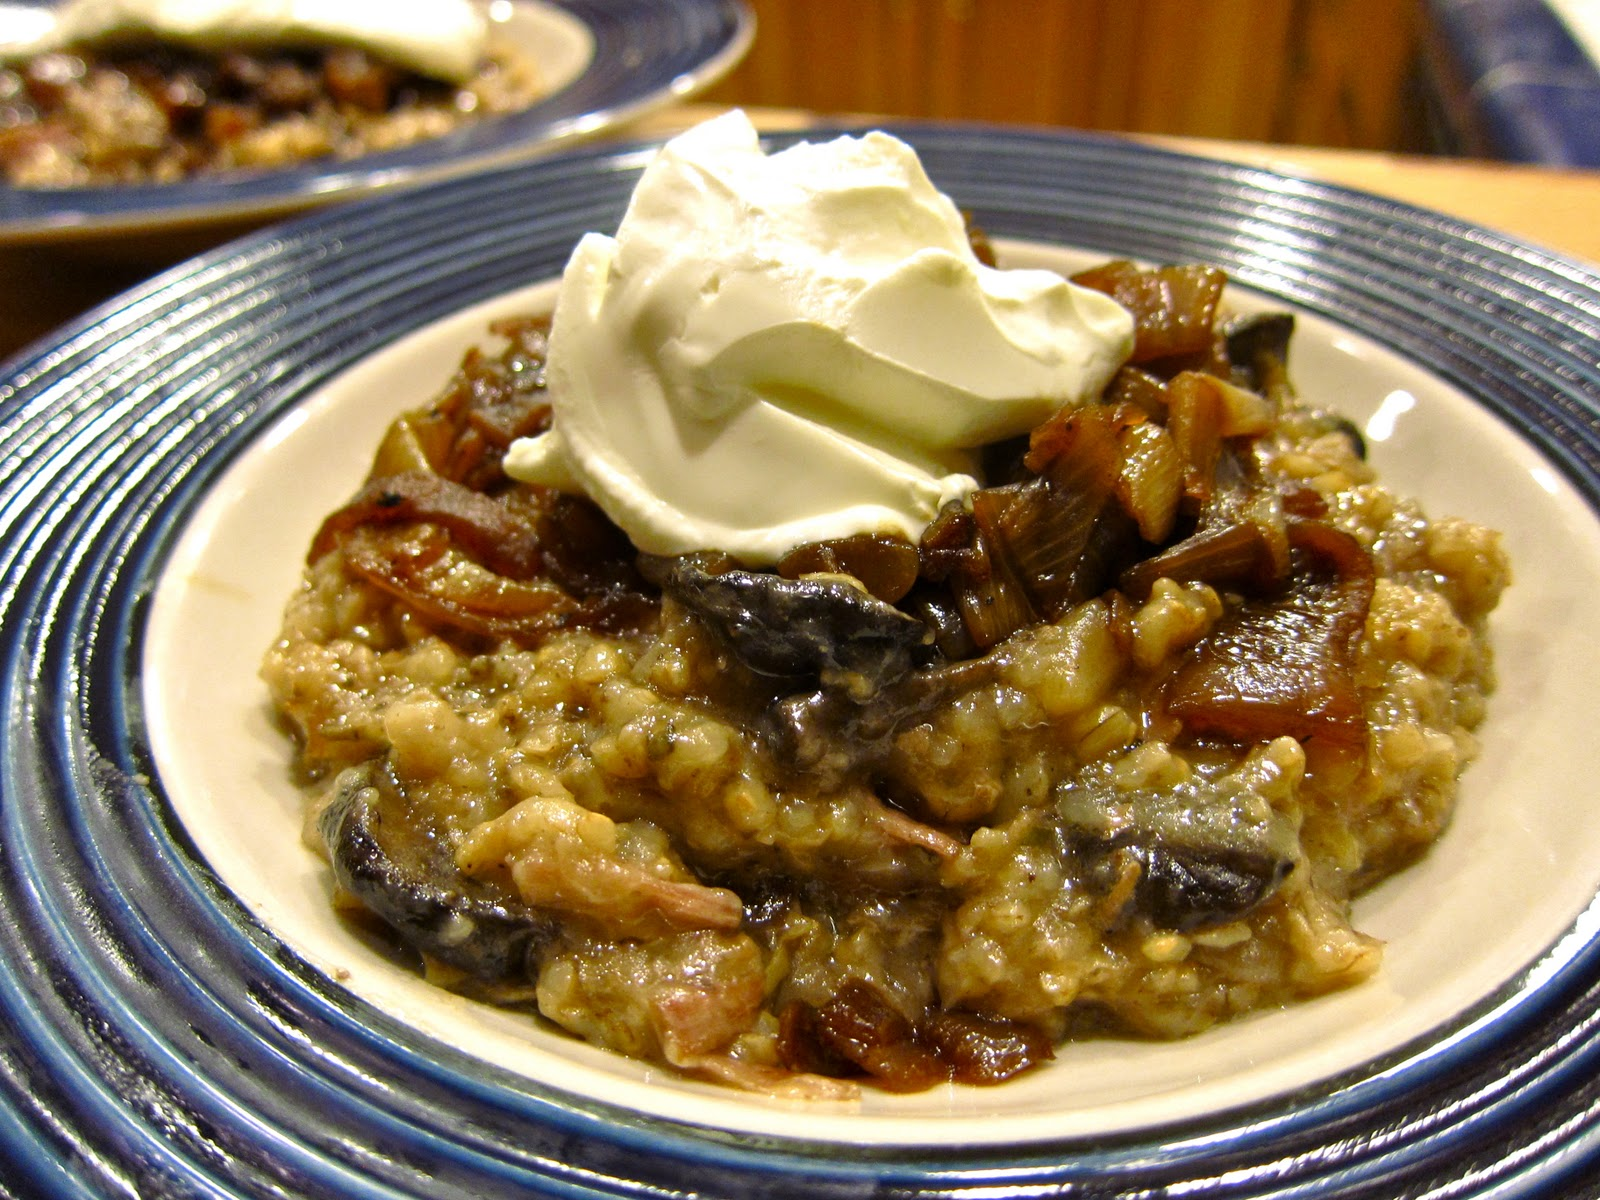 ... Delicious: Slow Cooker Mushroom Risotto with Pork & Caramelized Onions